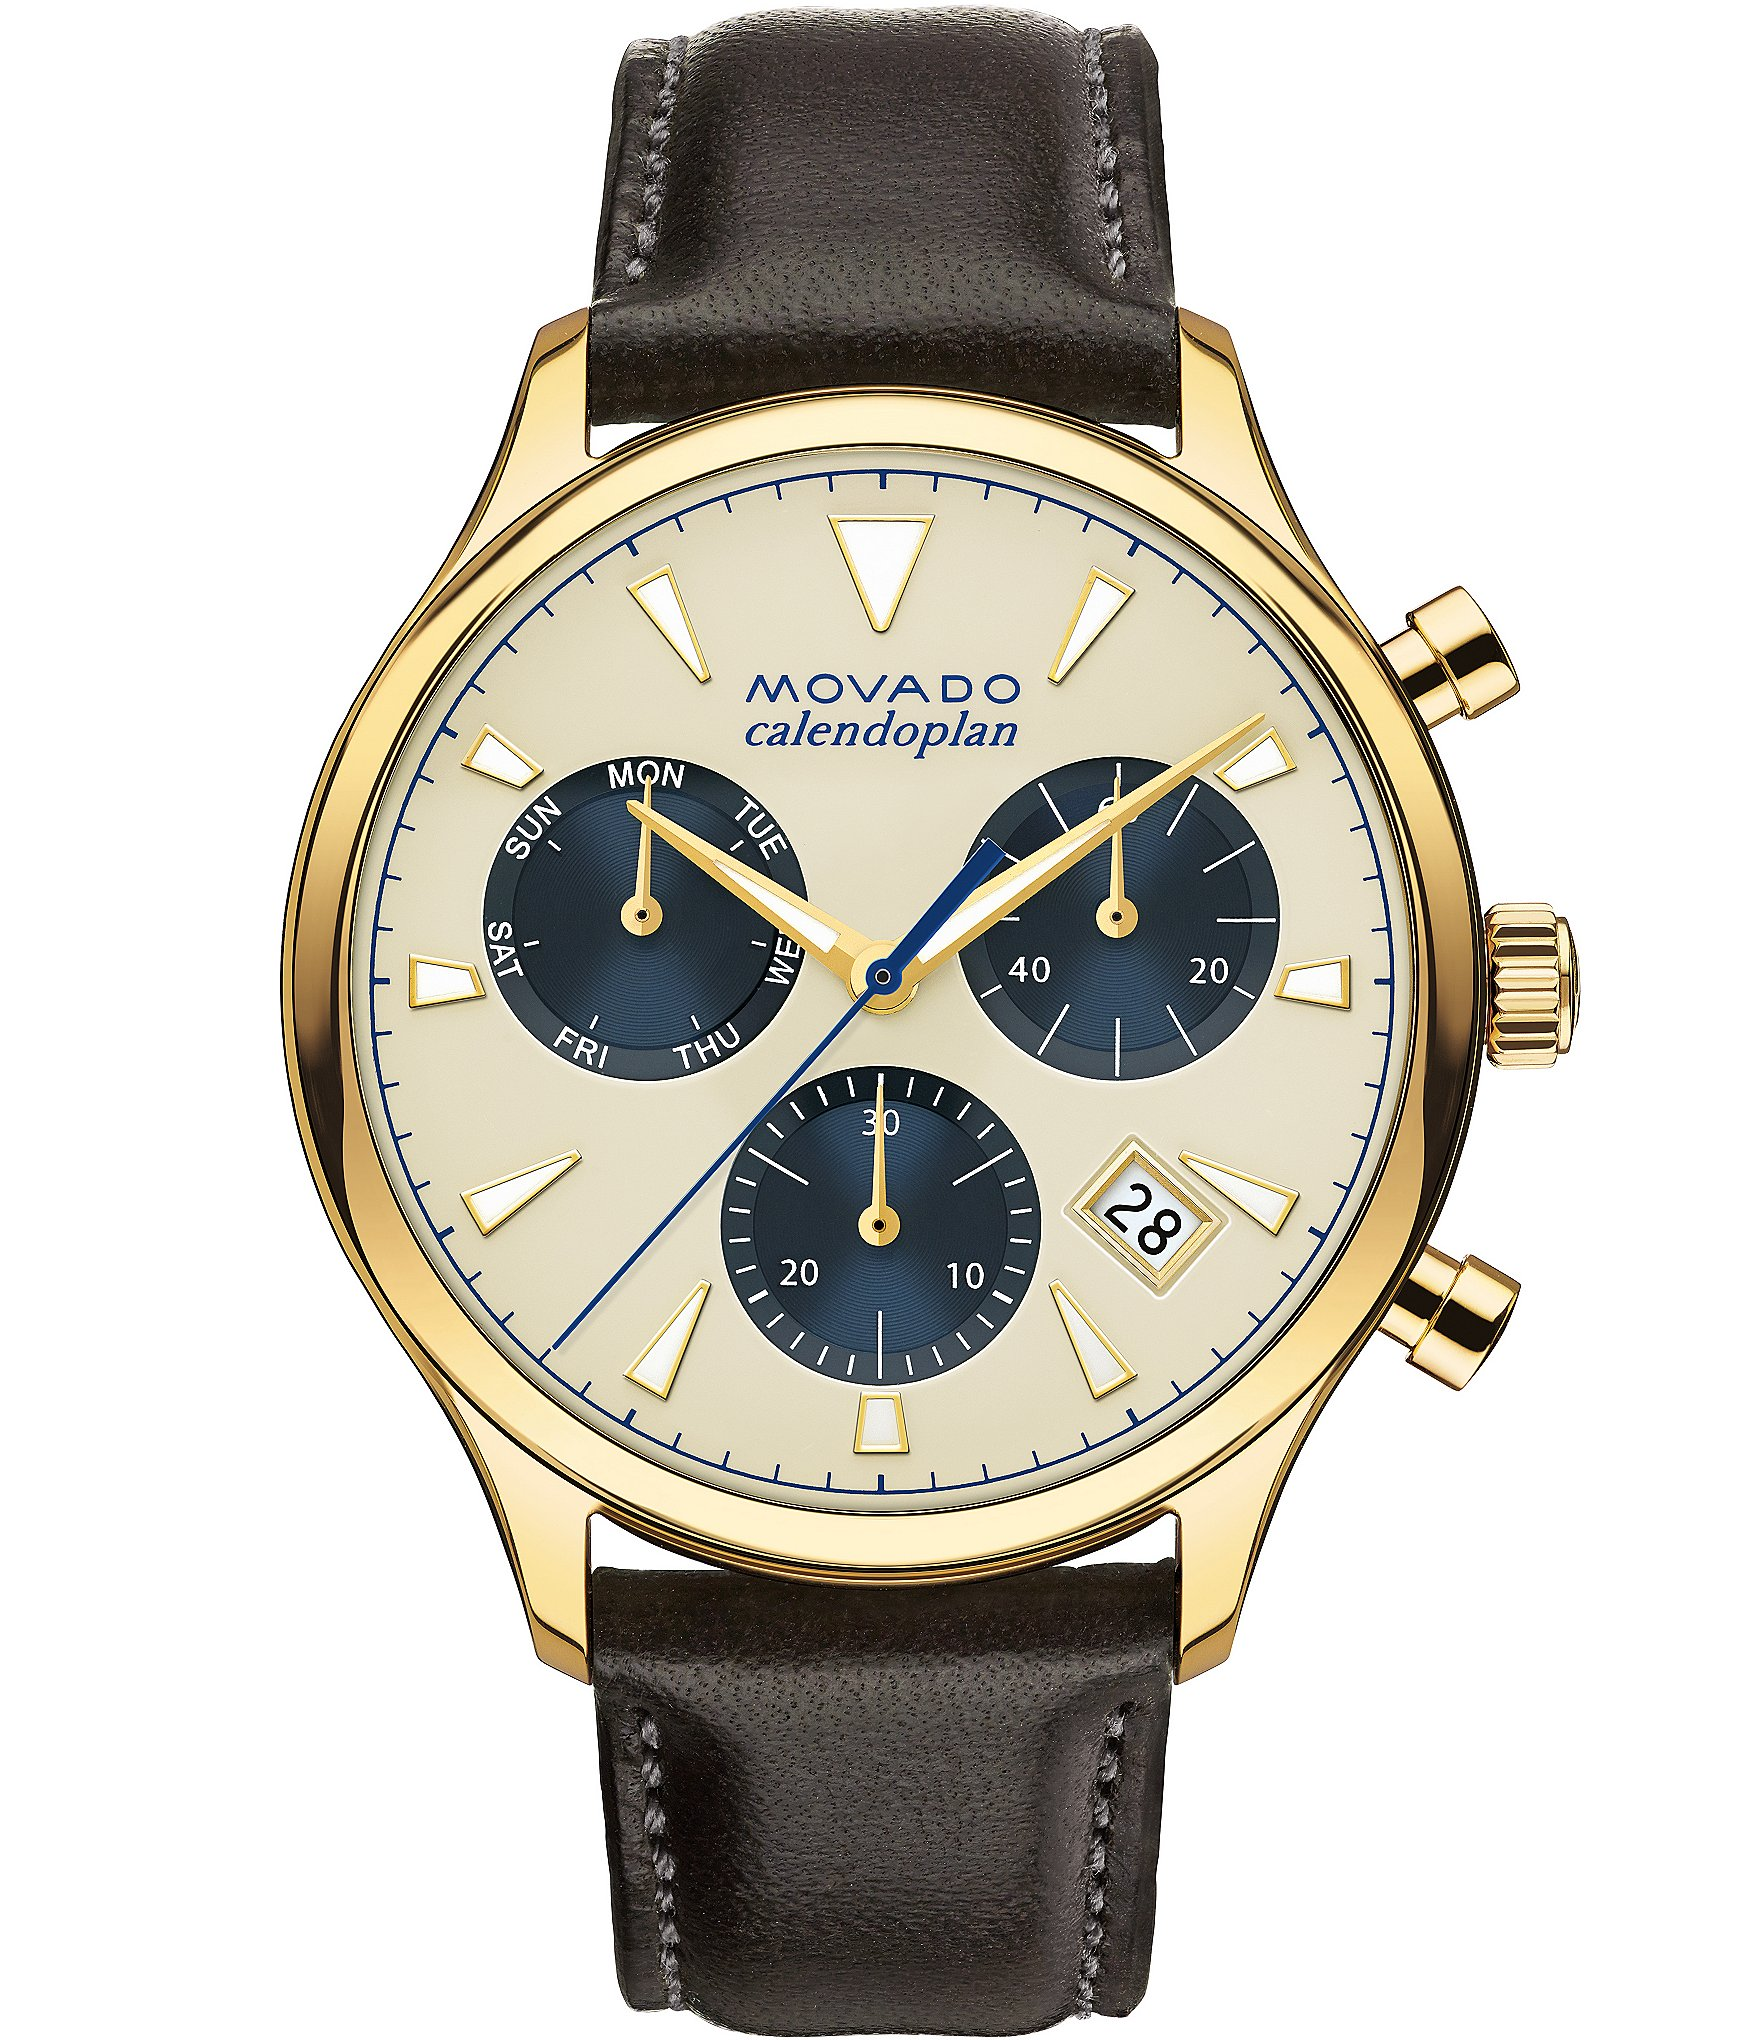 Movado heritage series calendoplan leather strap stainless steel luminescent chronograph watch for Luminescence watches